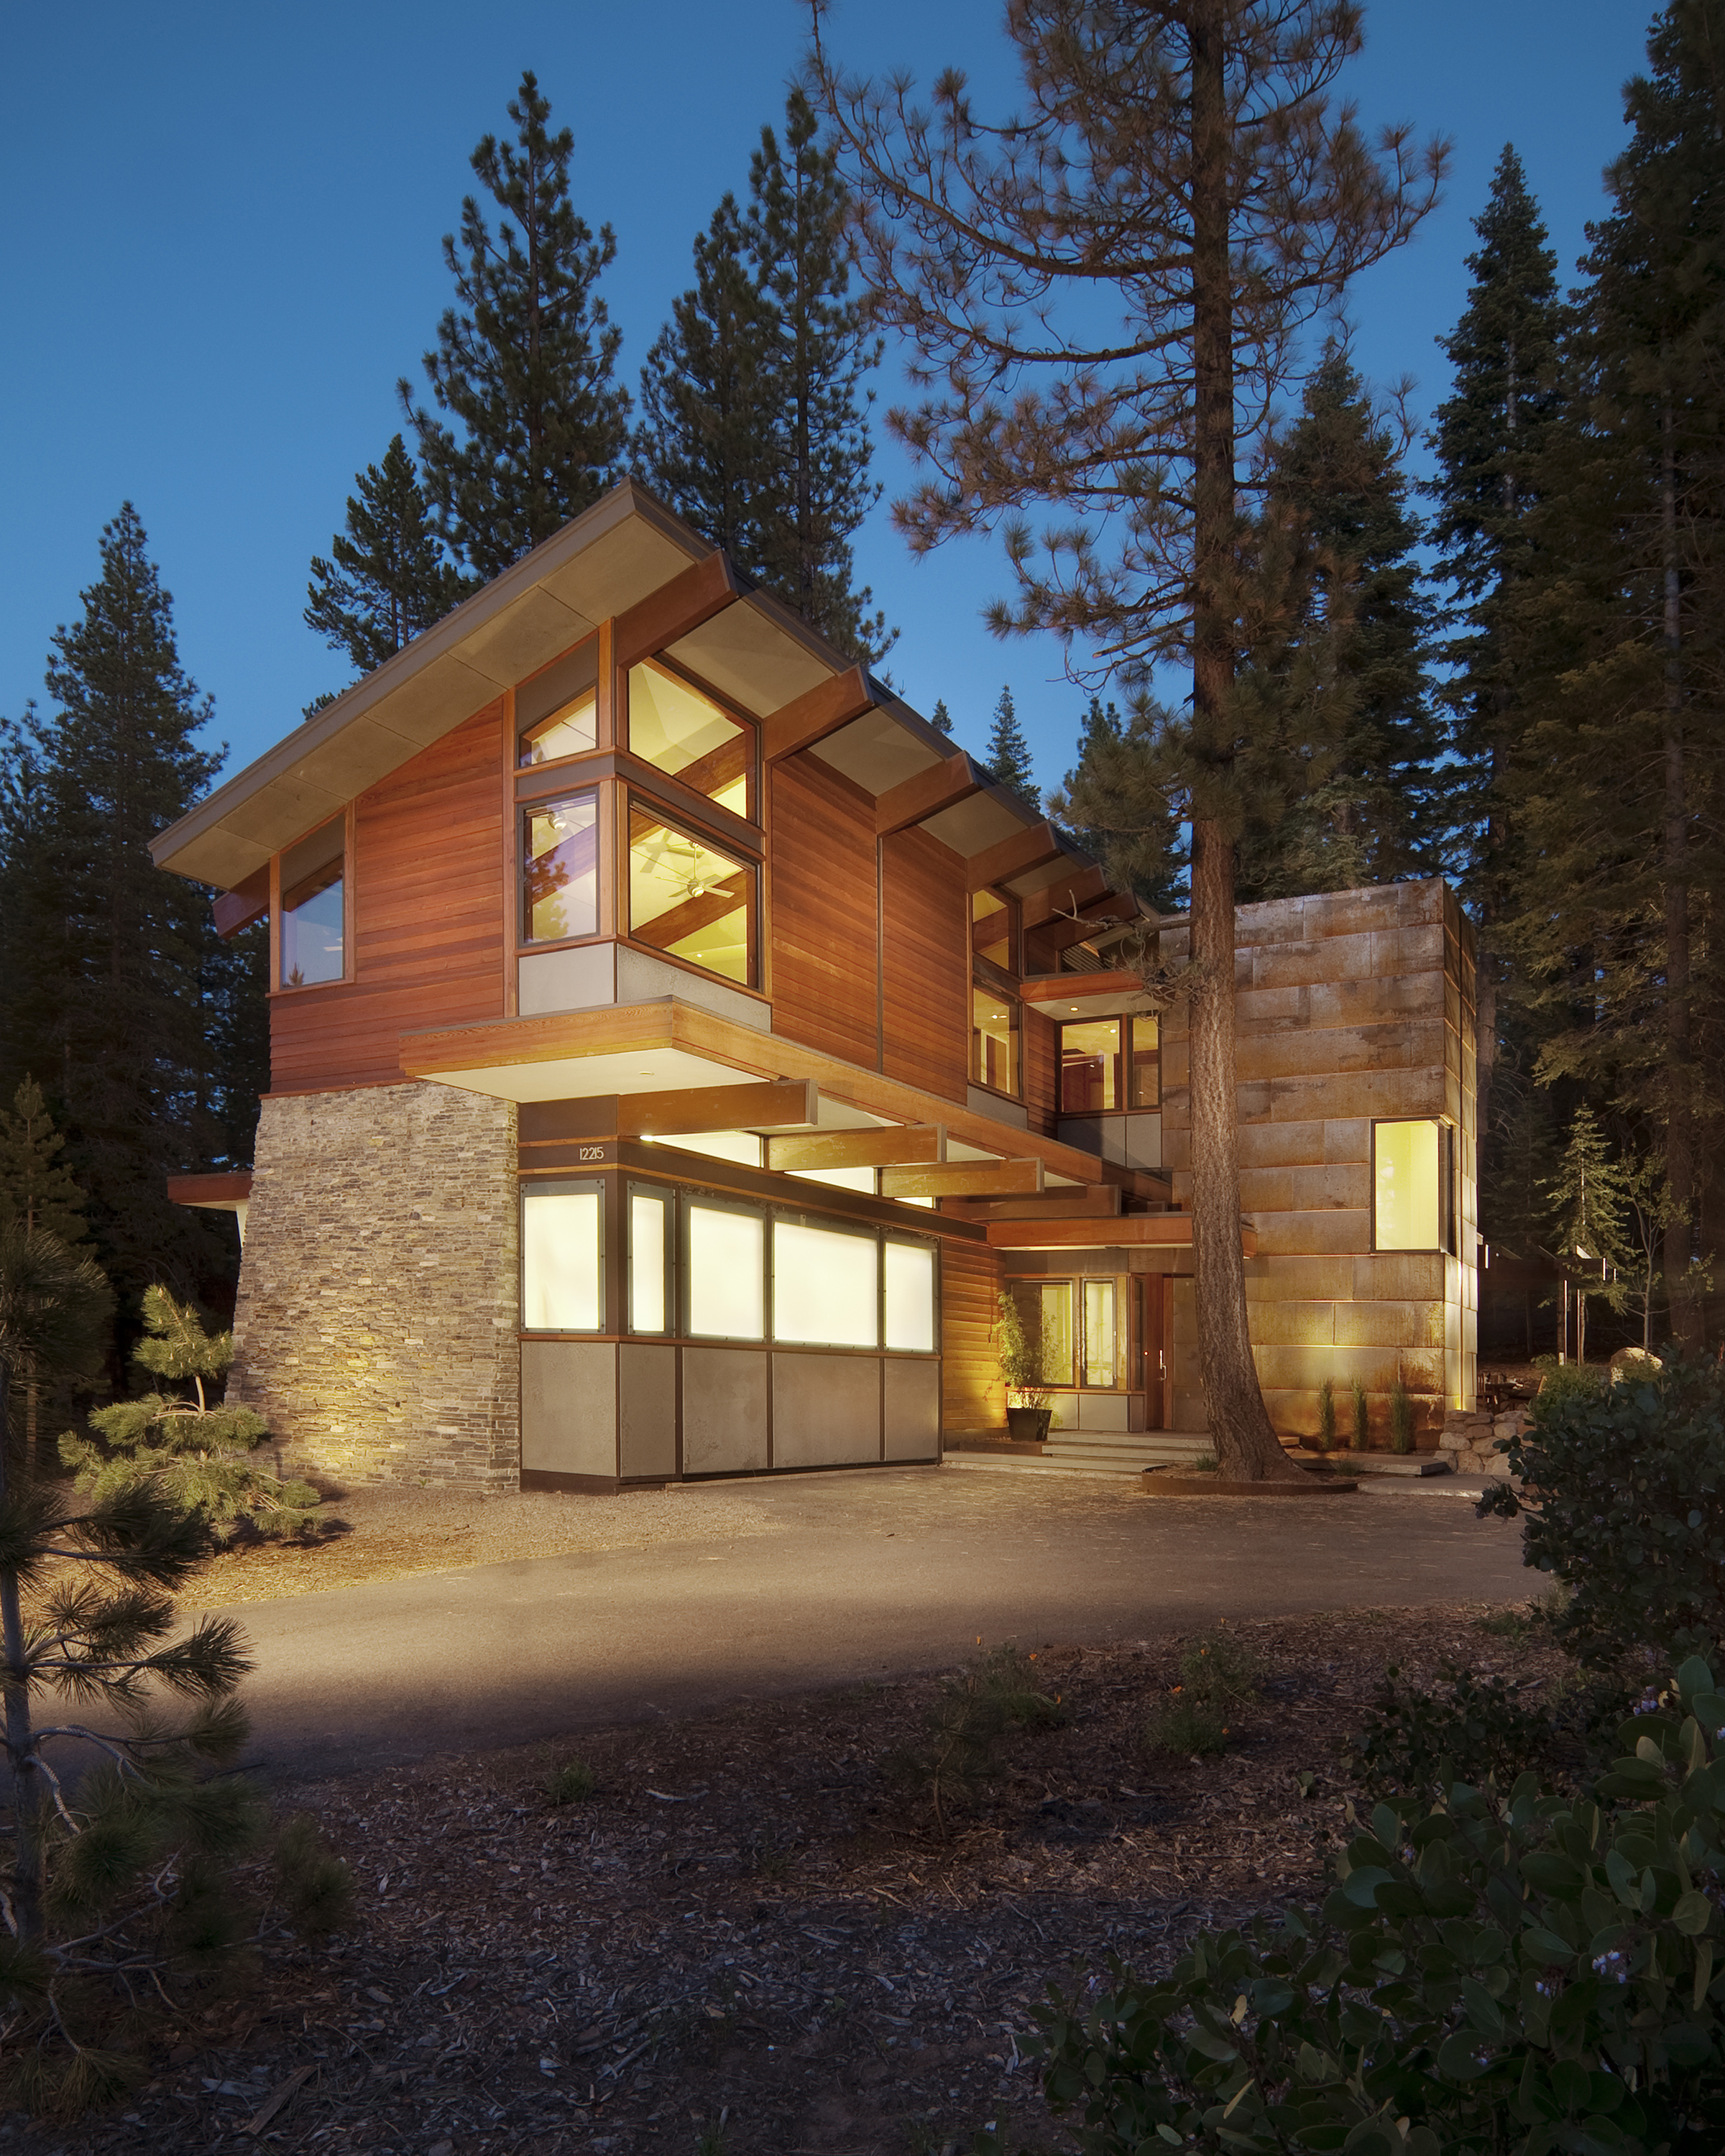 rentals winter lakeview search bedroom prop tahoe open discounts cabins dates spring lake luxury home my first vacation